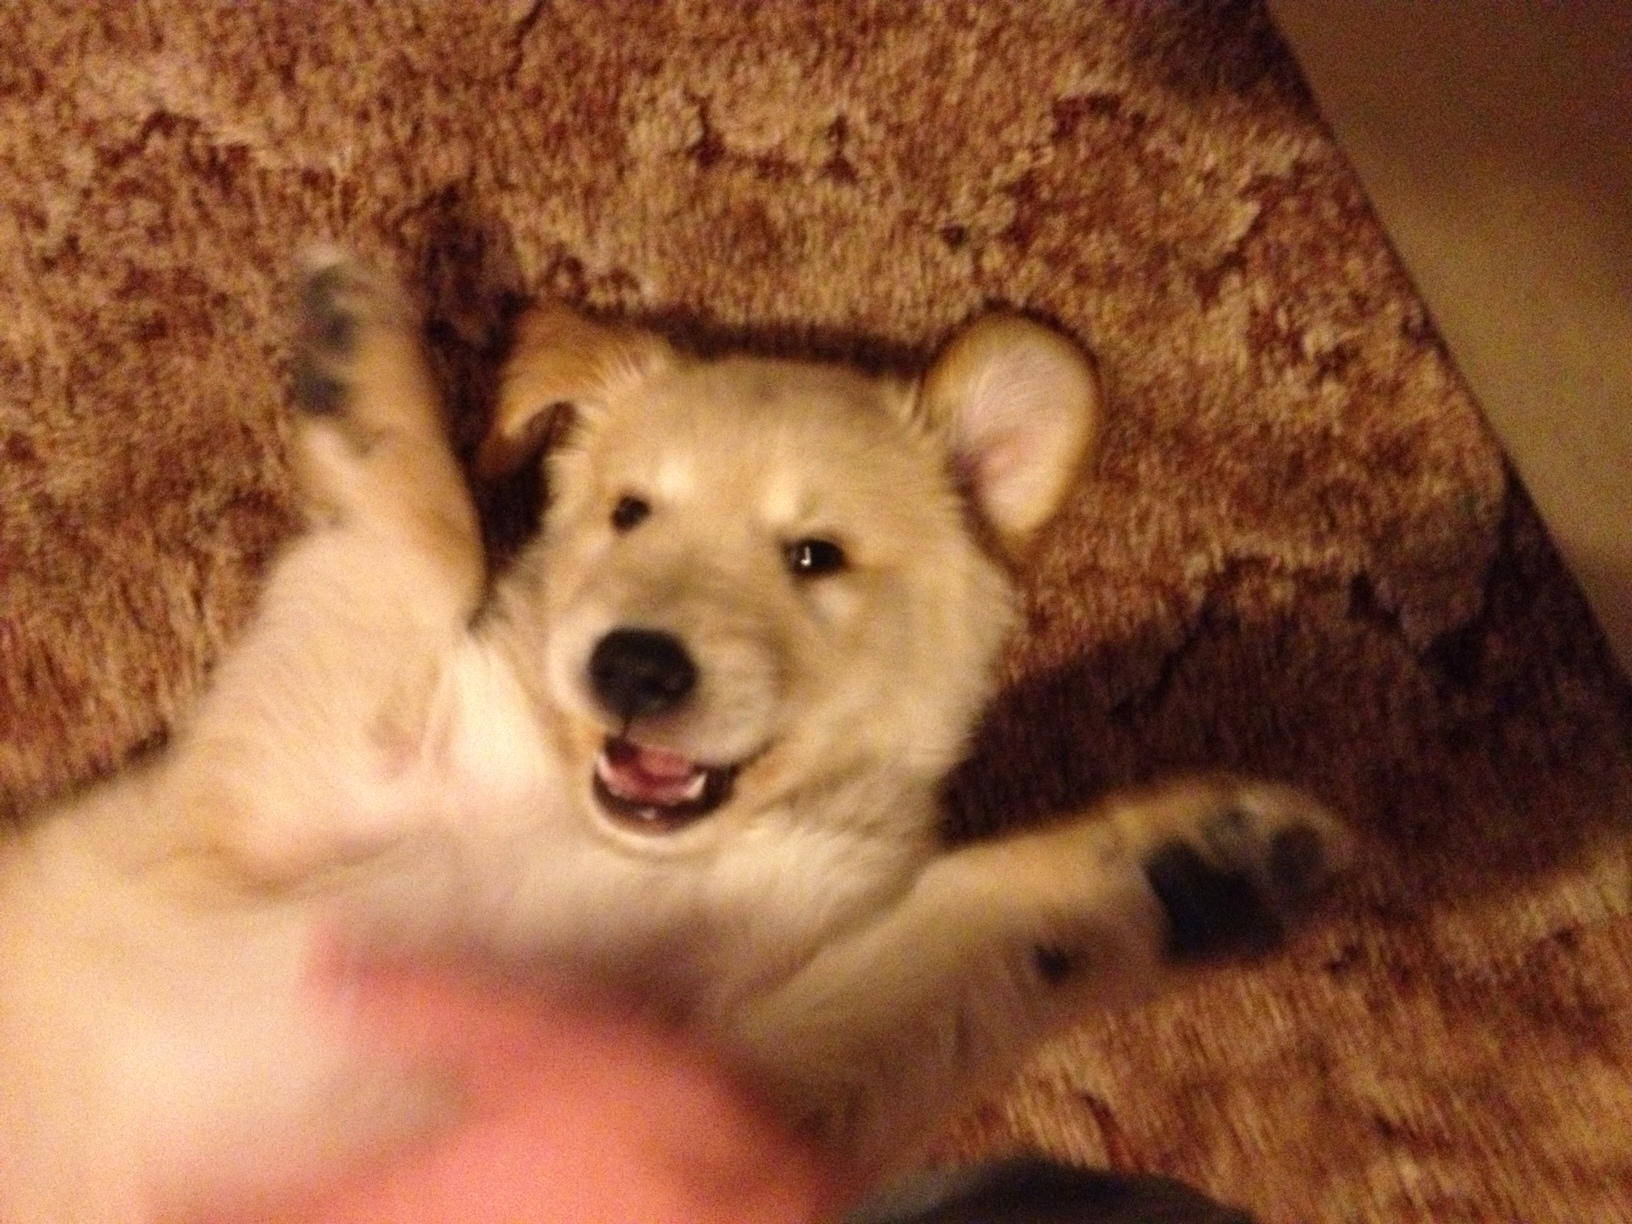 fievel general today corgi mutant loves live corner pets pictures your super post busy streets rained